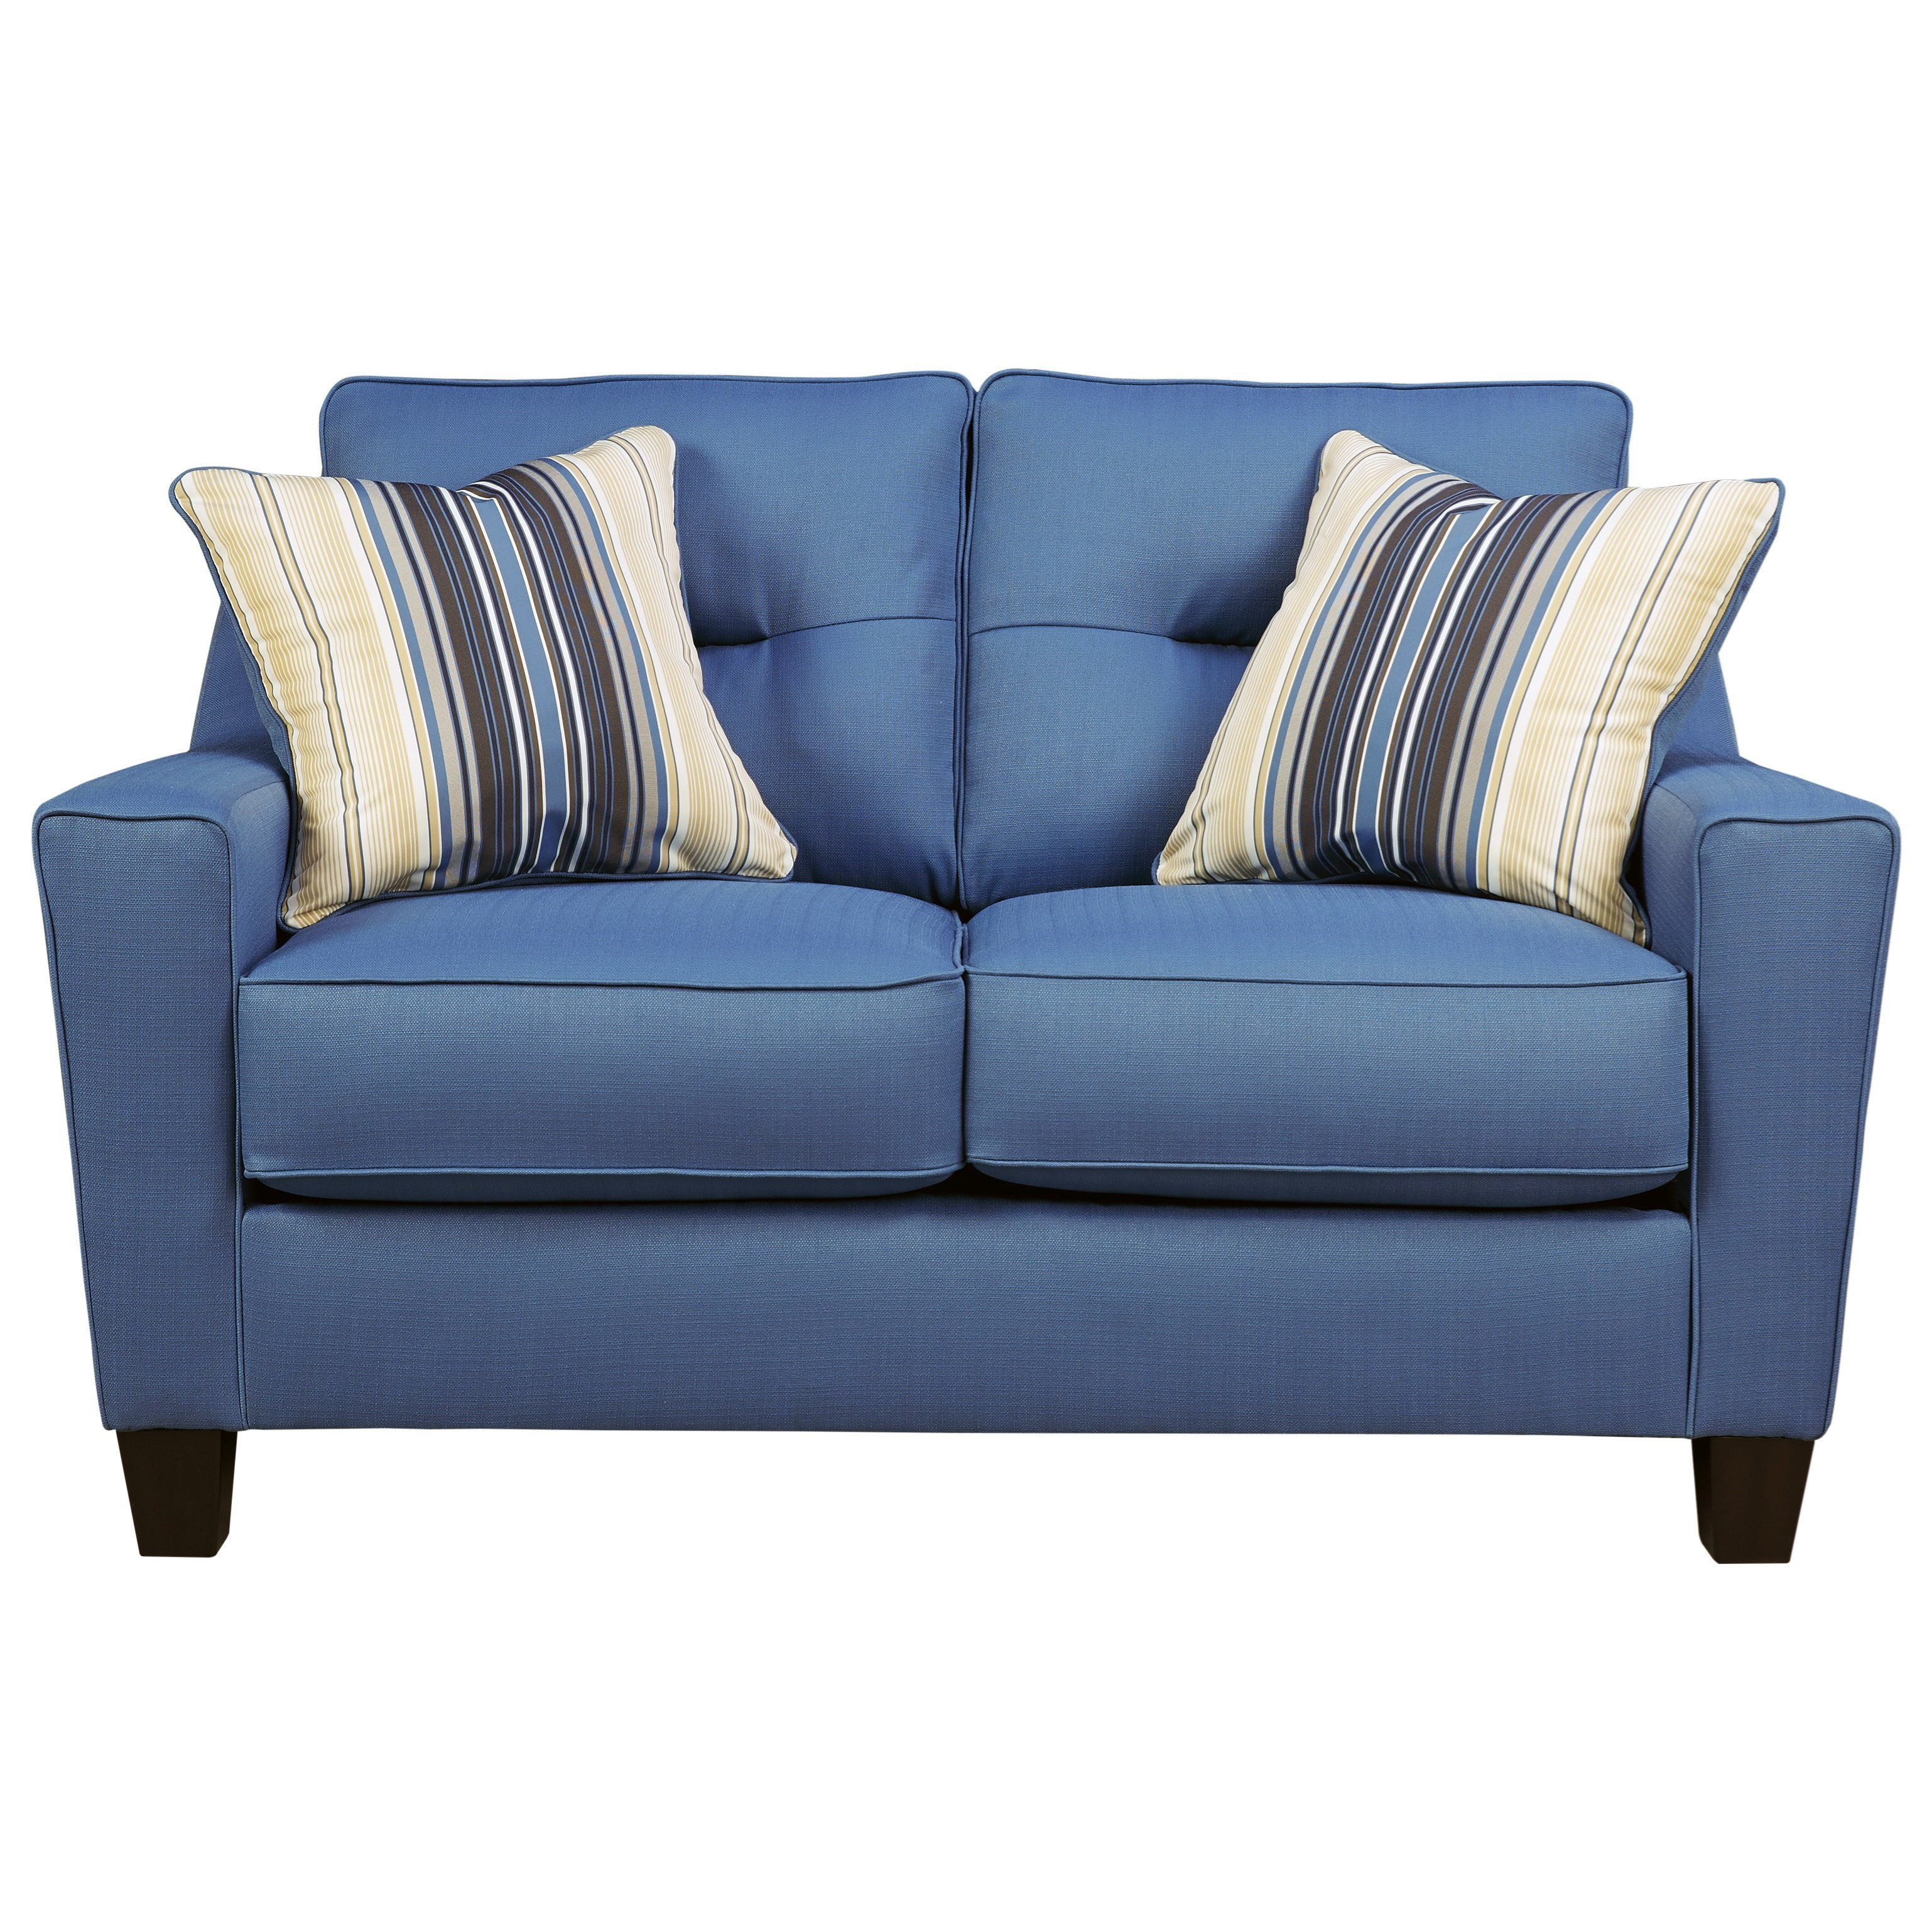 Benchcraft Forsan Nuvella Contemporary Loveseat In Performance Fabric Value City Furniture